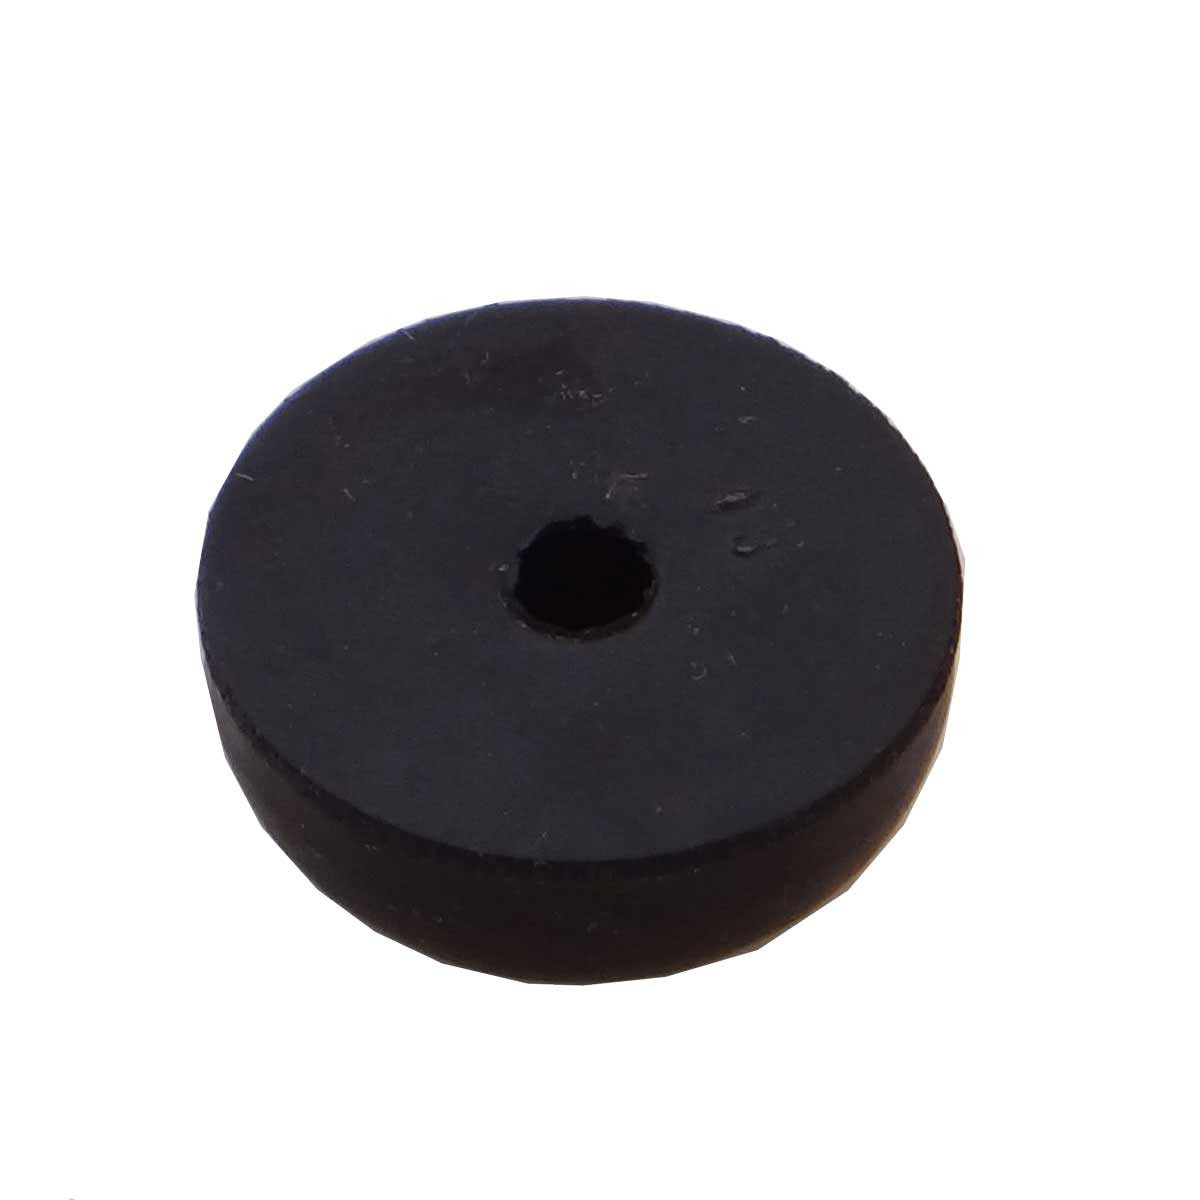 Rubber Foot for Gemini Revolution XT Tile Saw 2